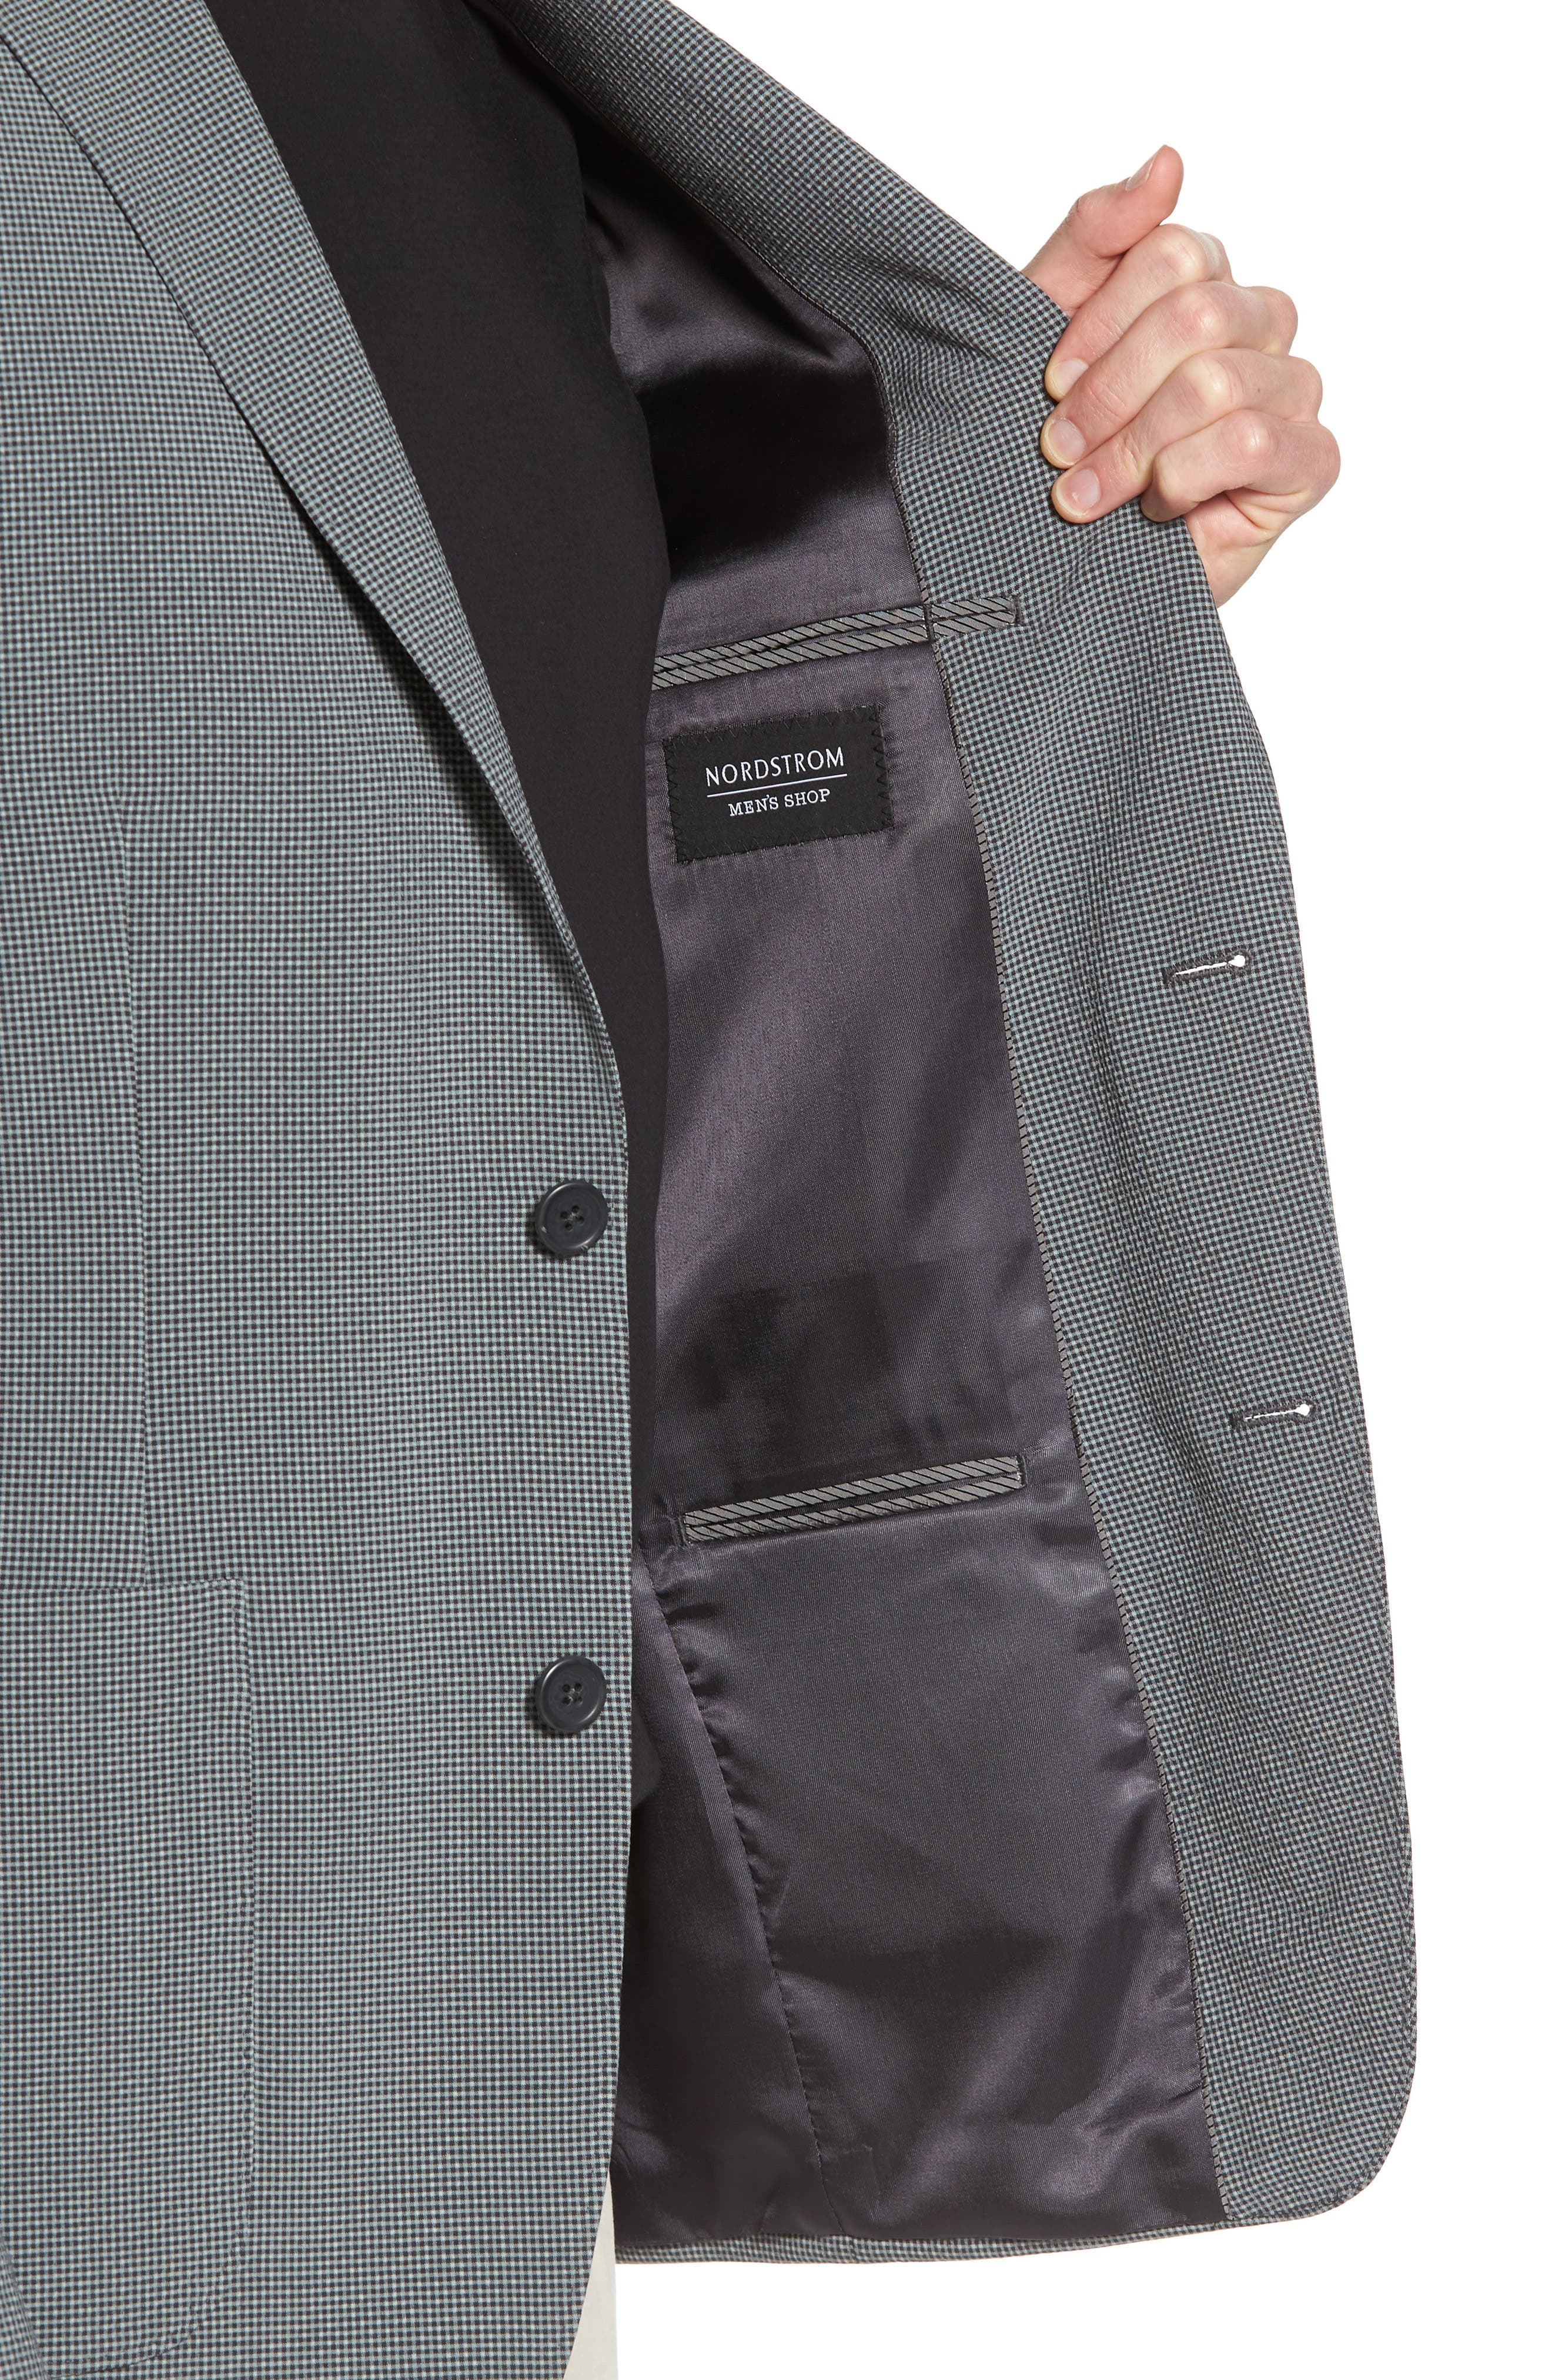 Trim Fit Seersucker Wool Blend Sport Coat,                             Alternate thumbnail 7, color,